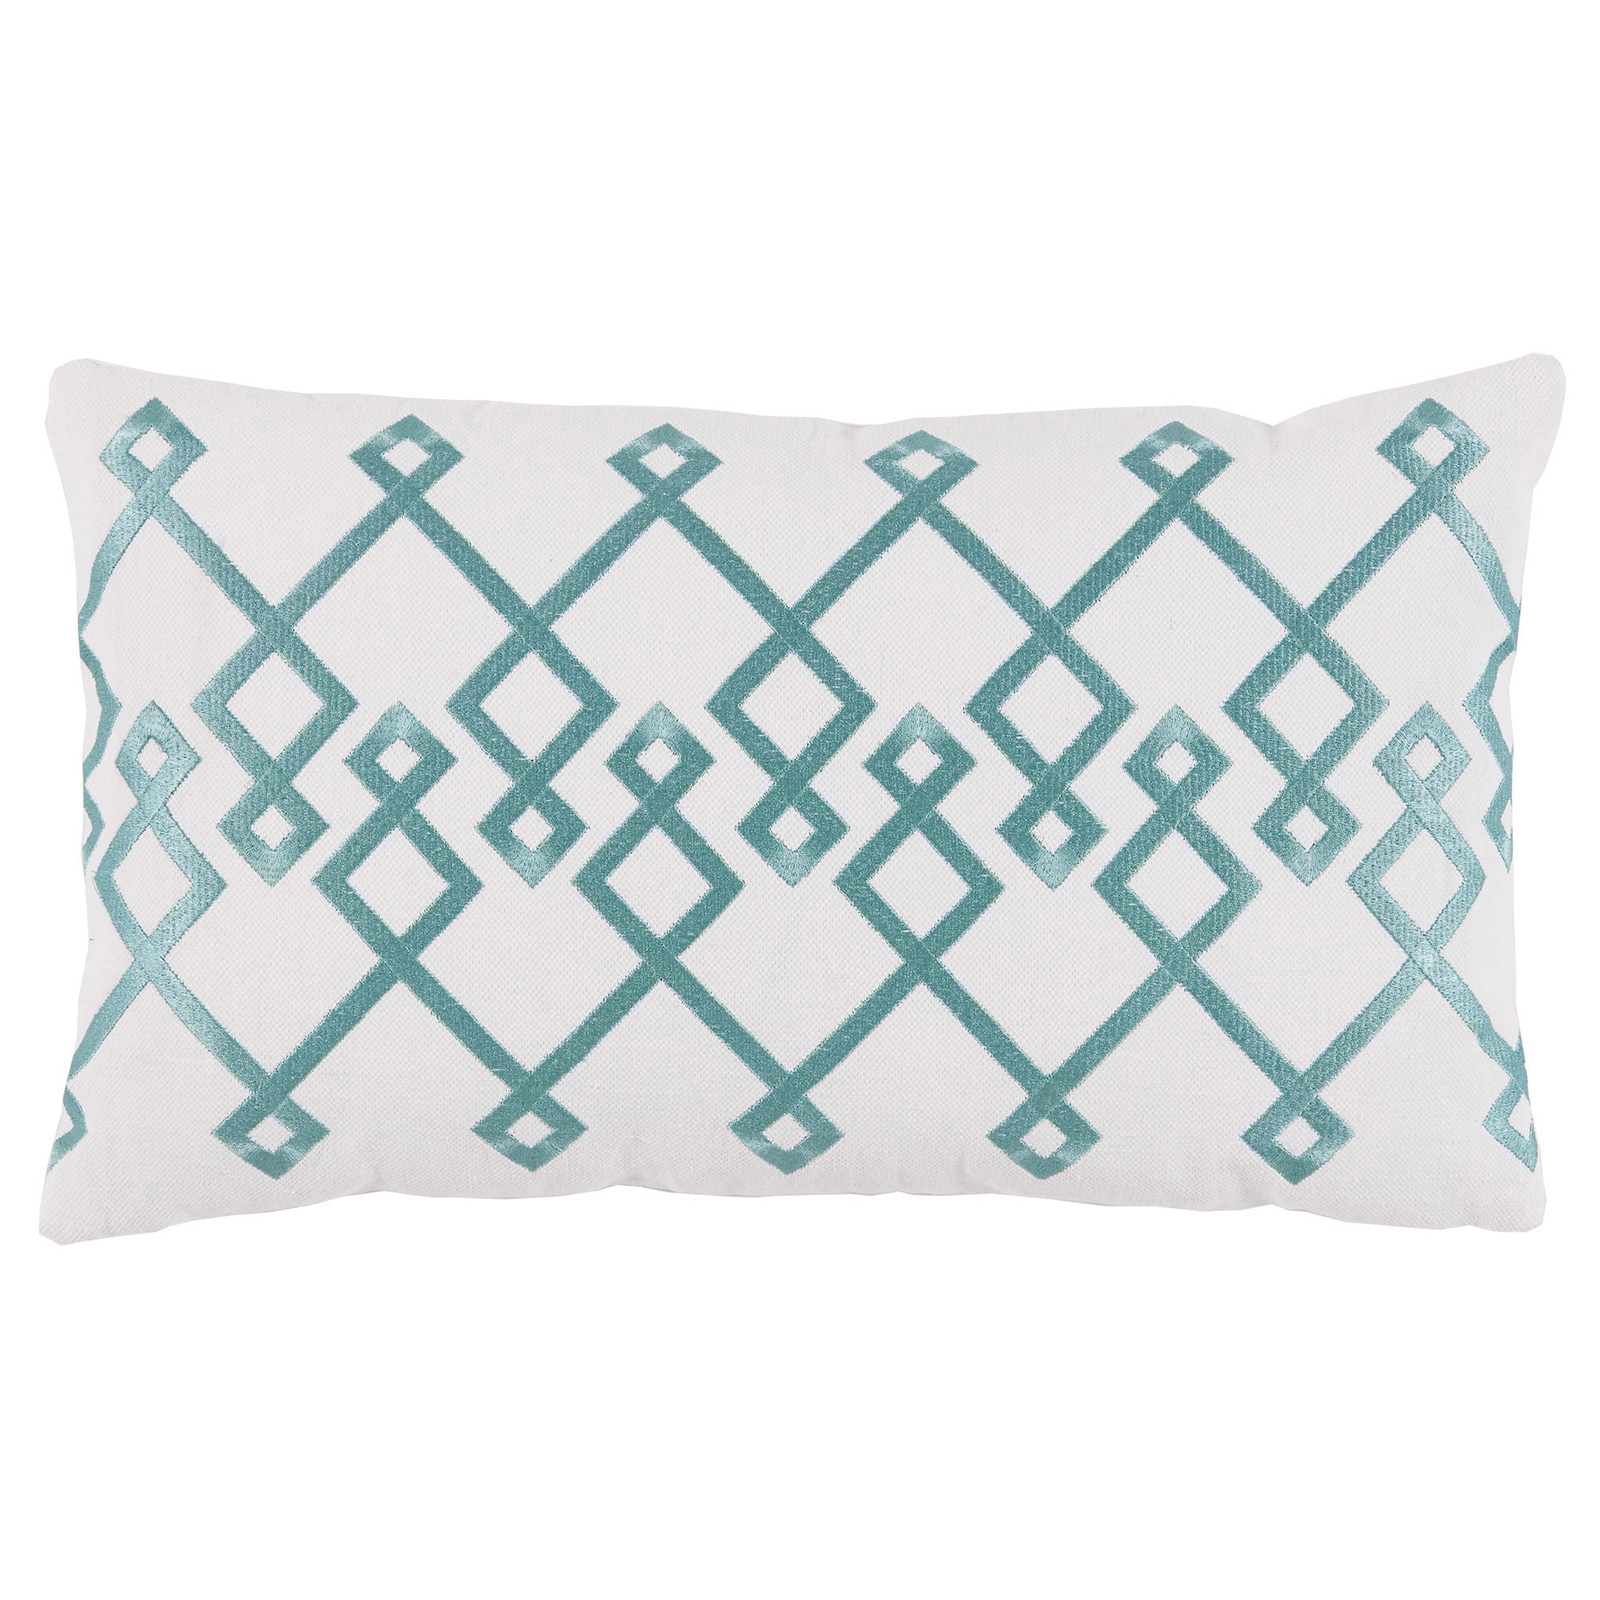 Steph Modern Mineral Chevron Embroidery White Pillow - 13x22